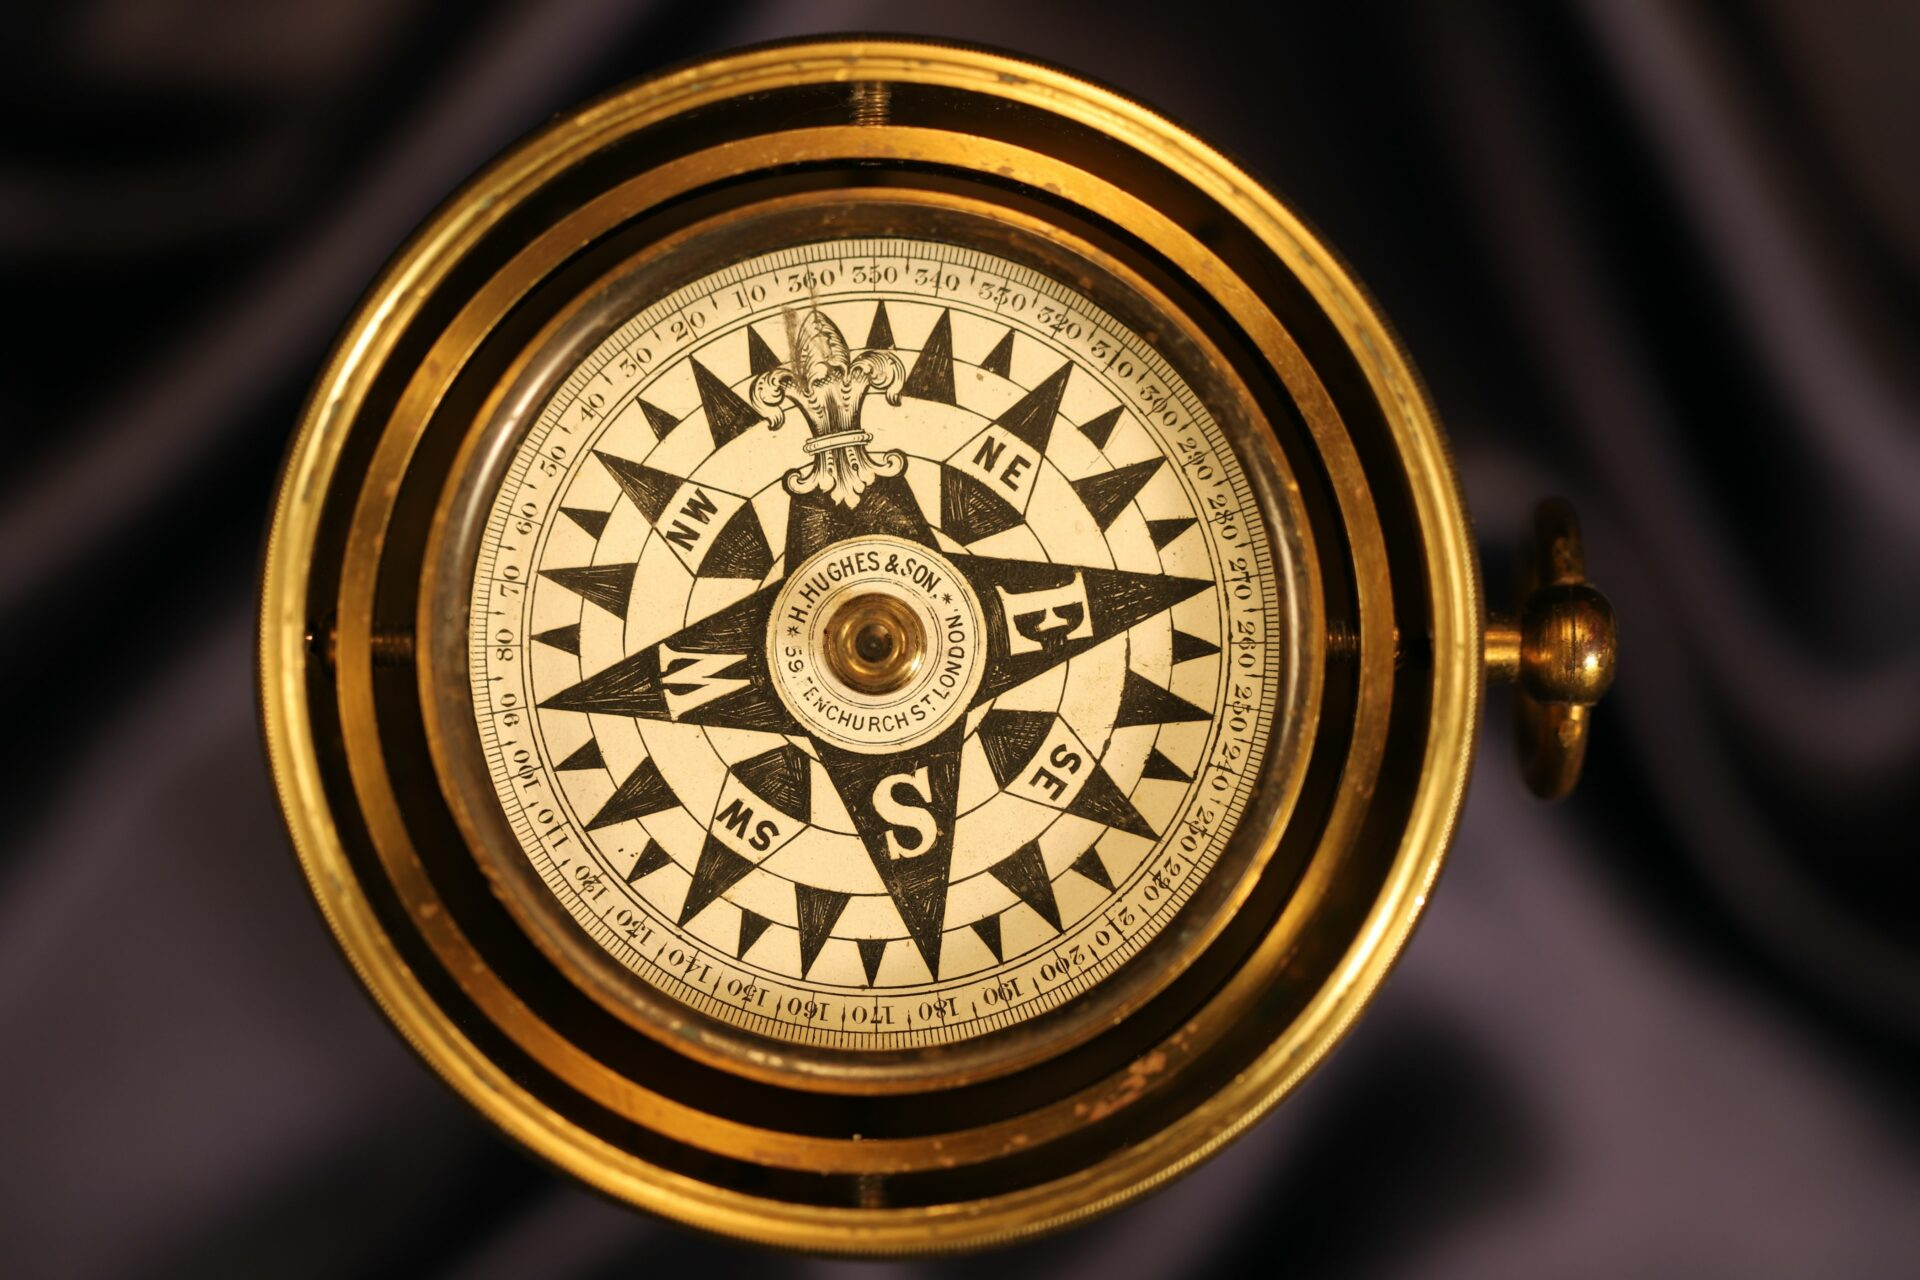 Image of Barker Gimballed Nautical Compass for Hughes c1880 from above